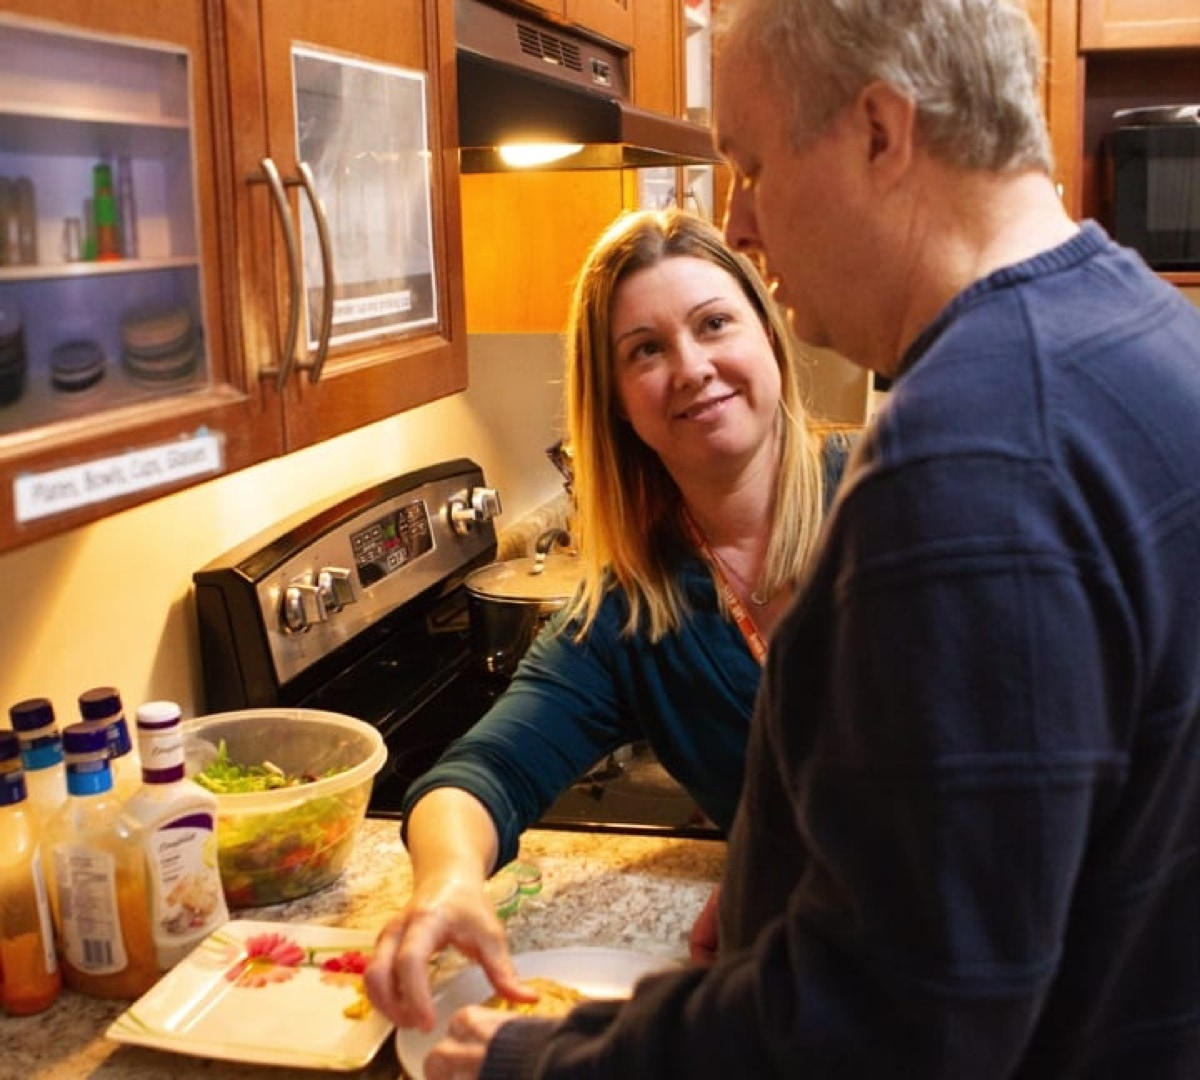 Male client is with smiling female staff member standing together at the kitchen counter preparing plates for a meal.